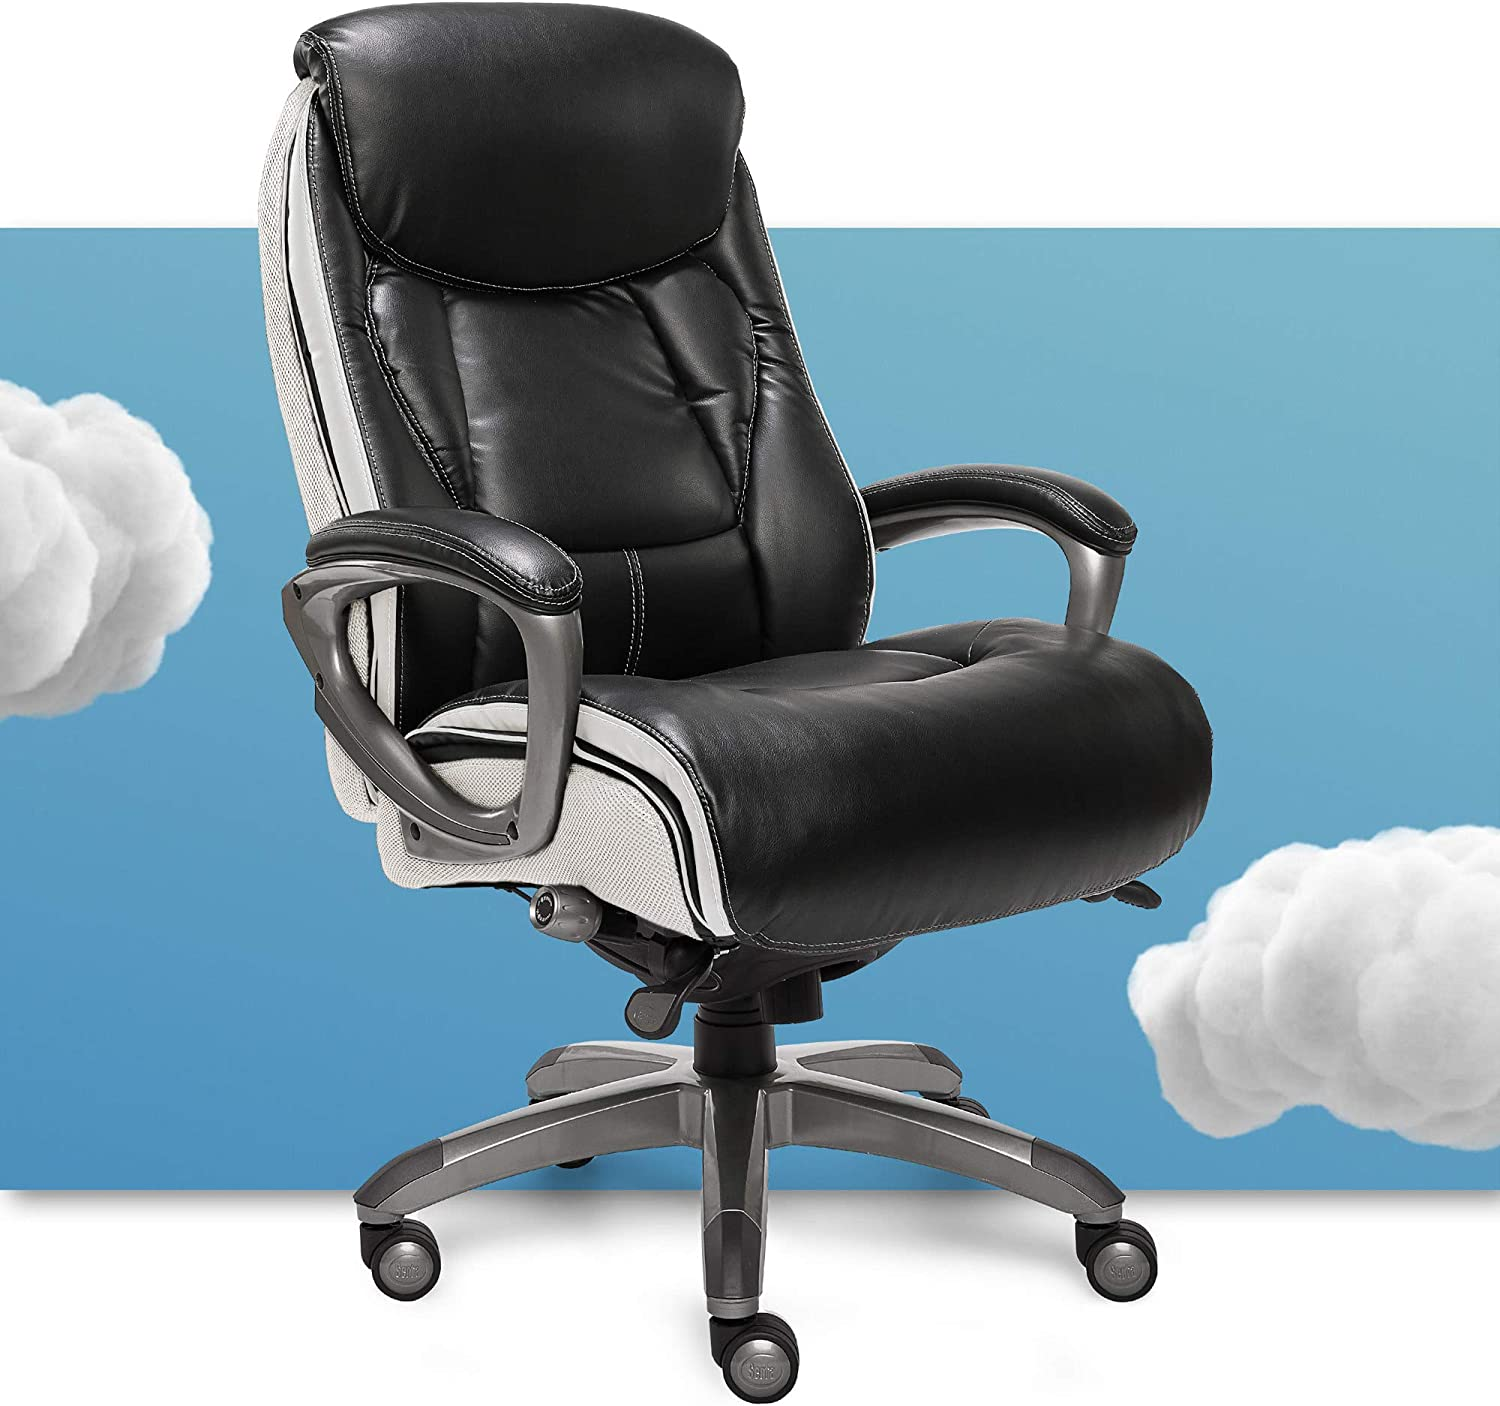 Amazon Com Serta 44942 Executive Office Chair With Smart Layers Technology Leather And Mesh Ergonomic With Contoured Lumbar And Comfortcoils Black White Furniture Decor